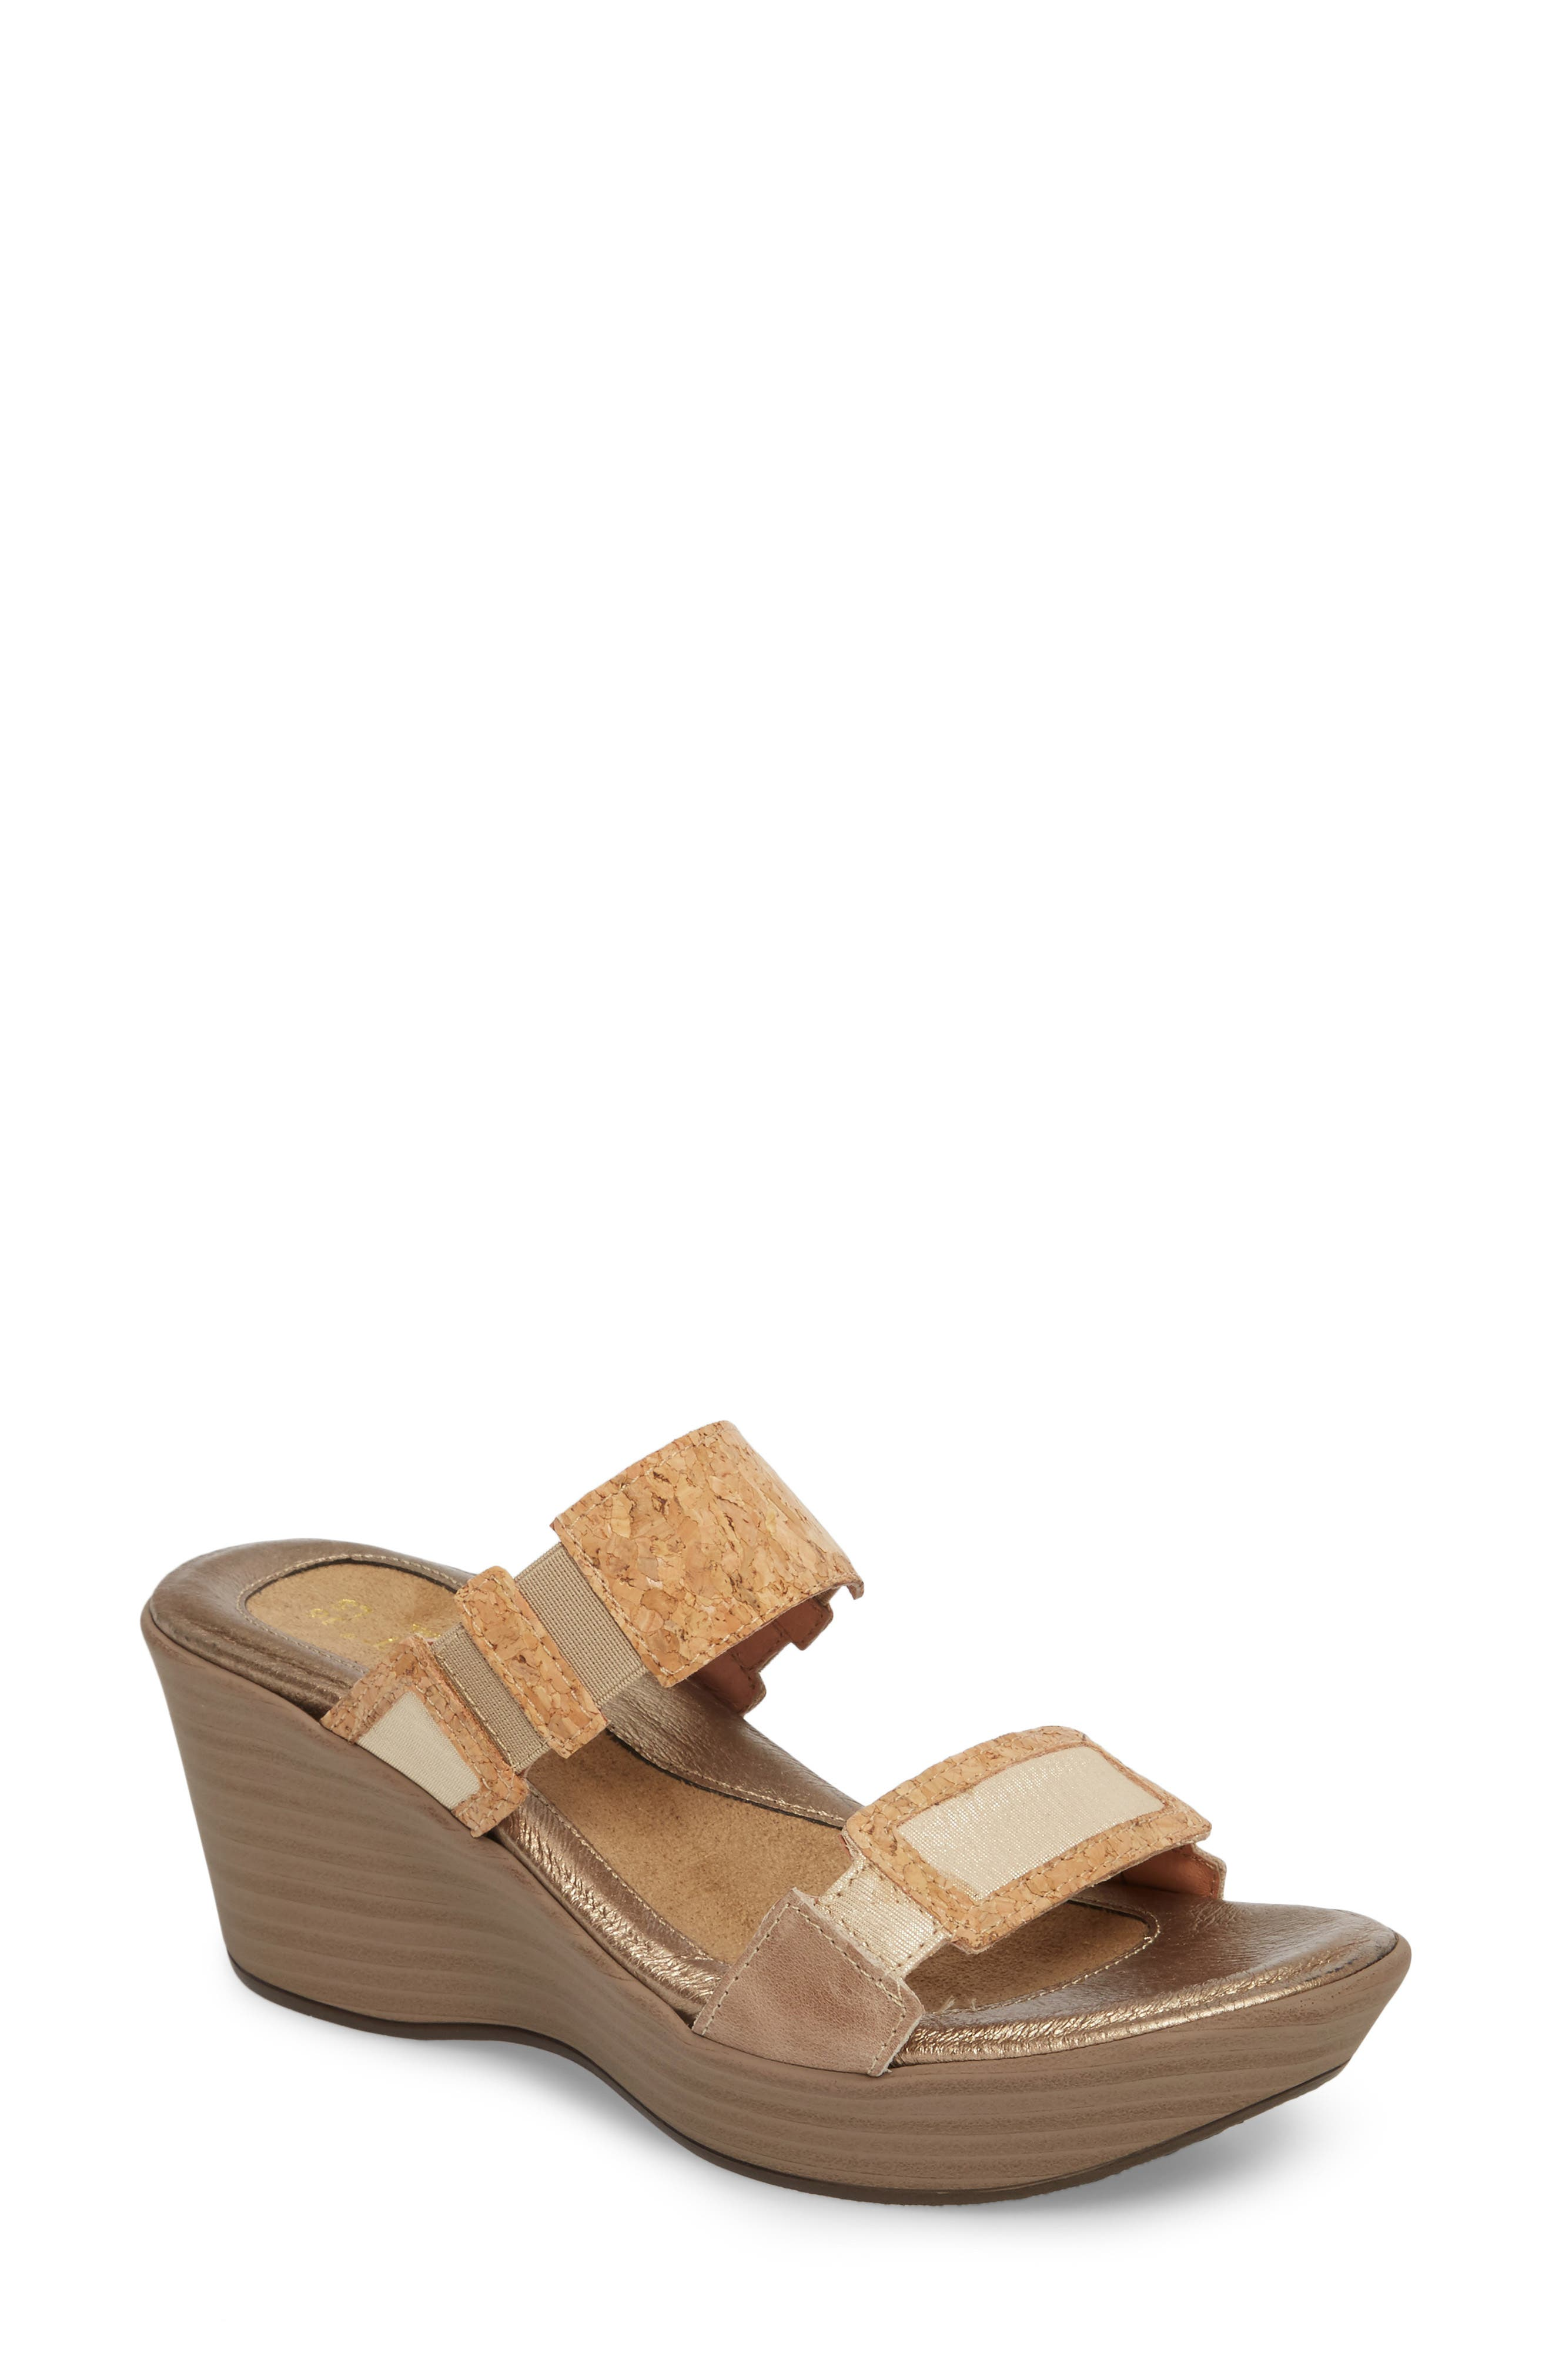 'Treasure' Sandal,                         Main,                         color, Cork Leather